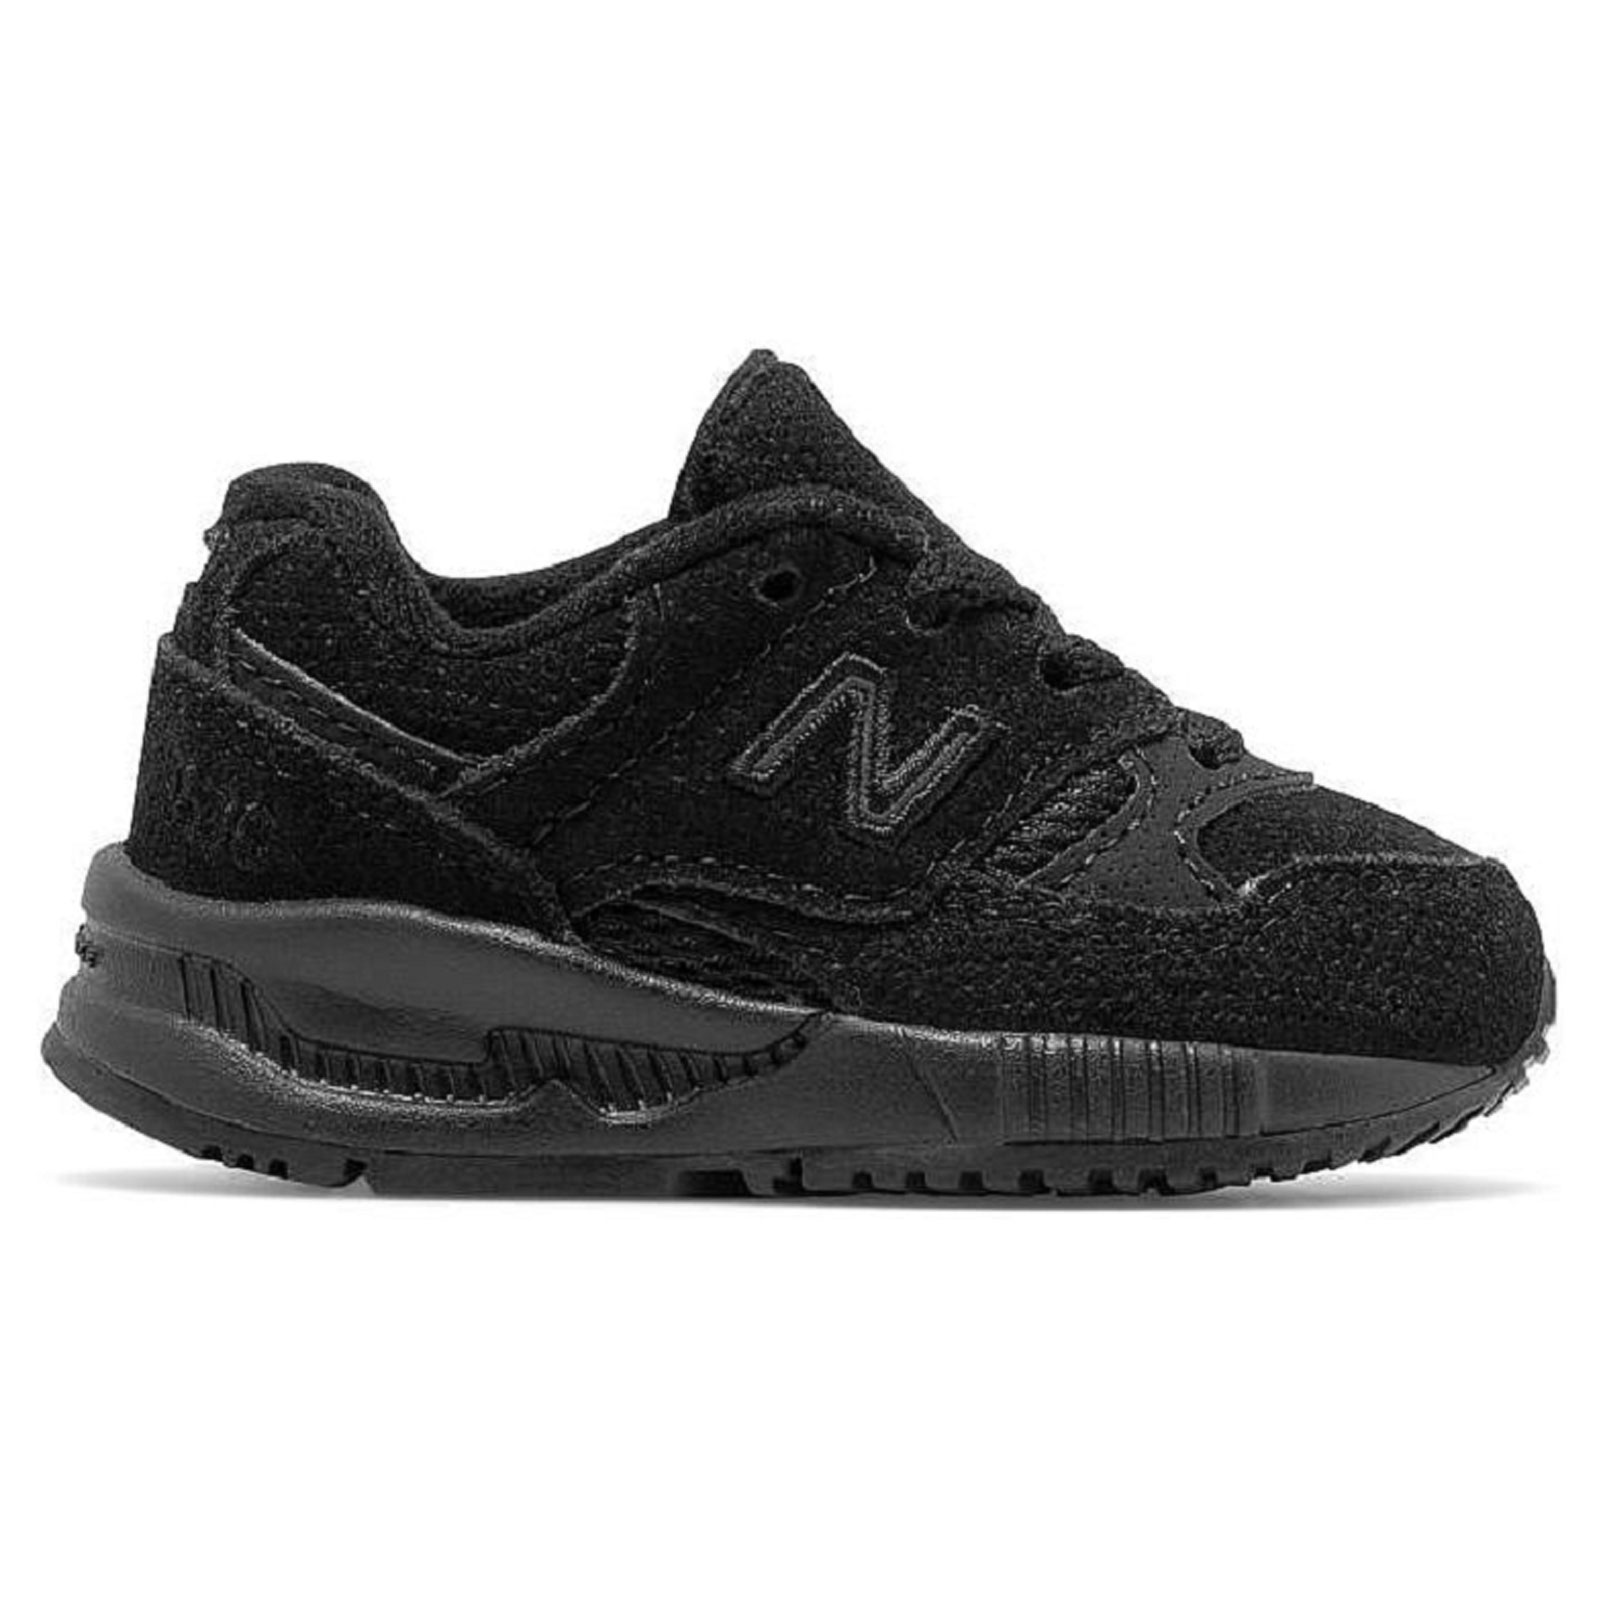 91b3ce4f0a Details about New Balance 530 Baby Children Kids Sneaker Shoes Trainers  black KL530TBI SALE